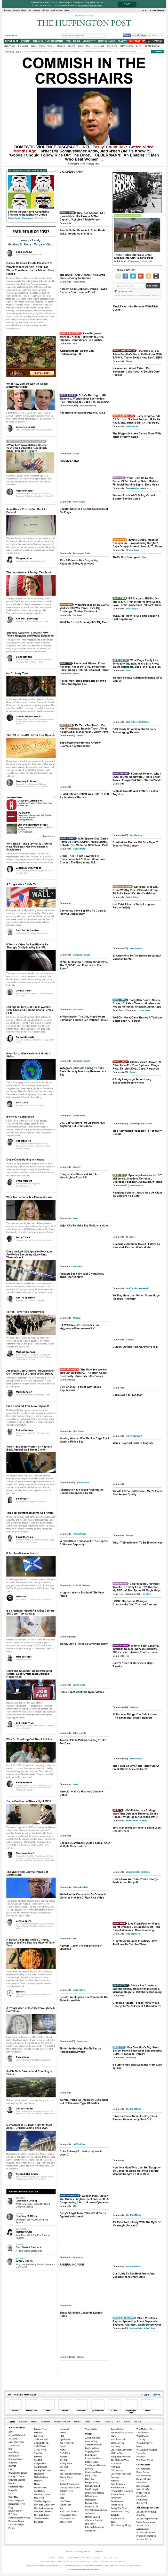 The Huffington Post at Tuesday Sept. 9, 2014, 7:07 a.m. UTC